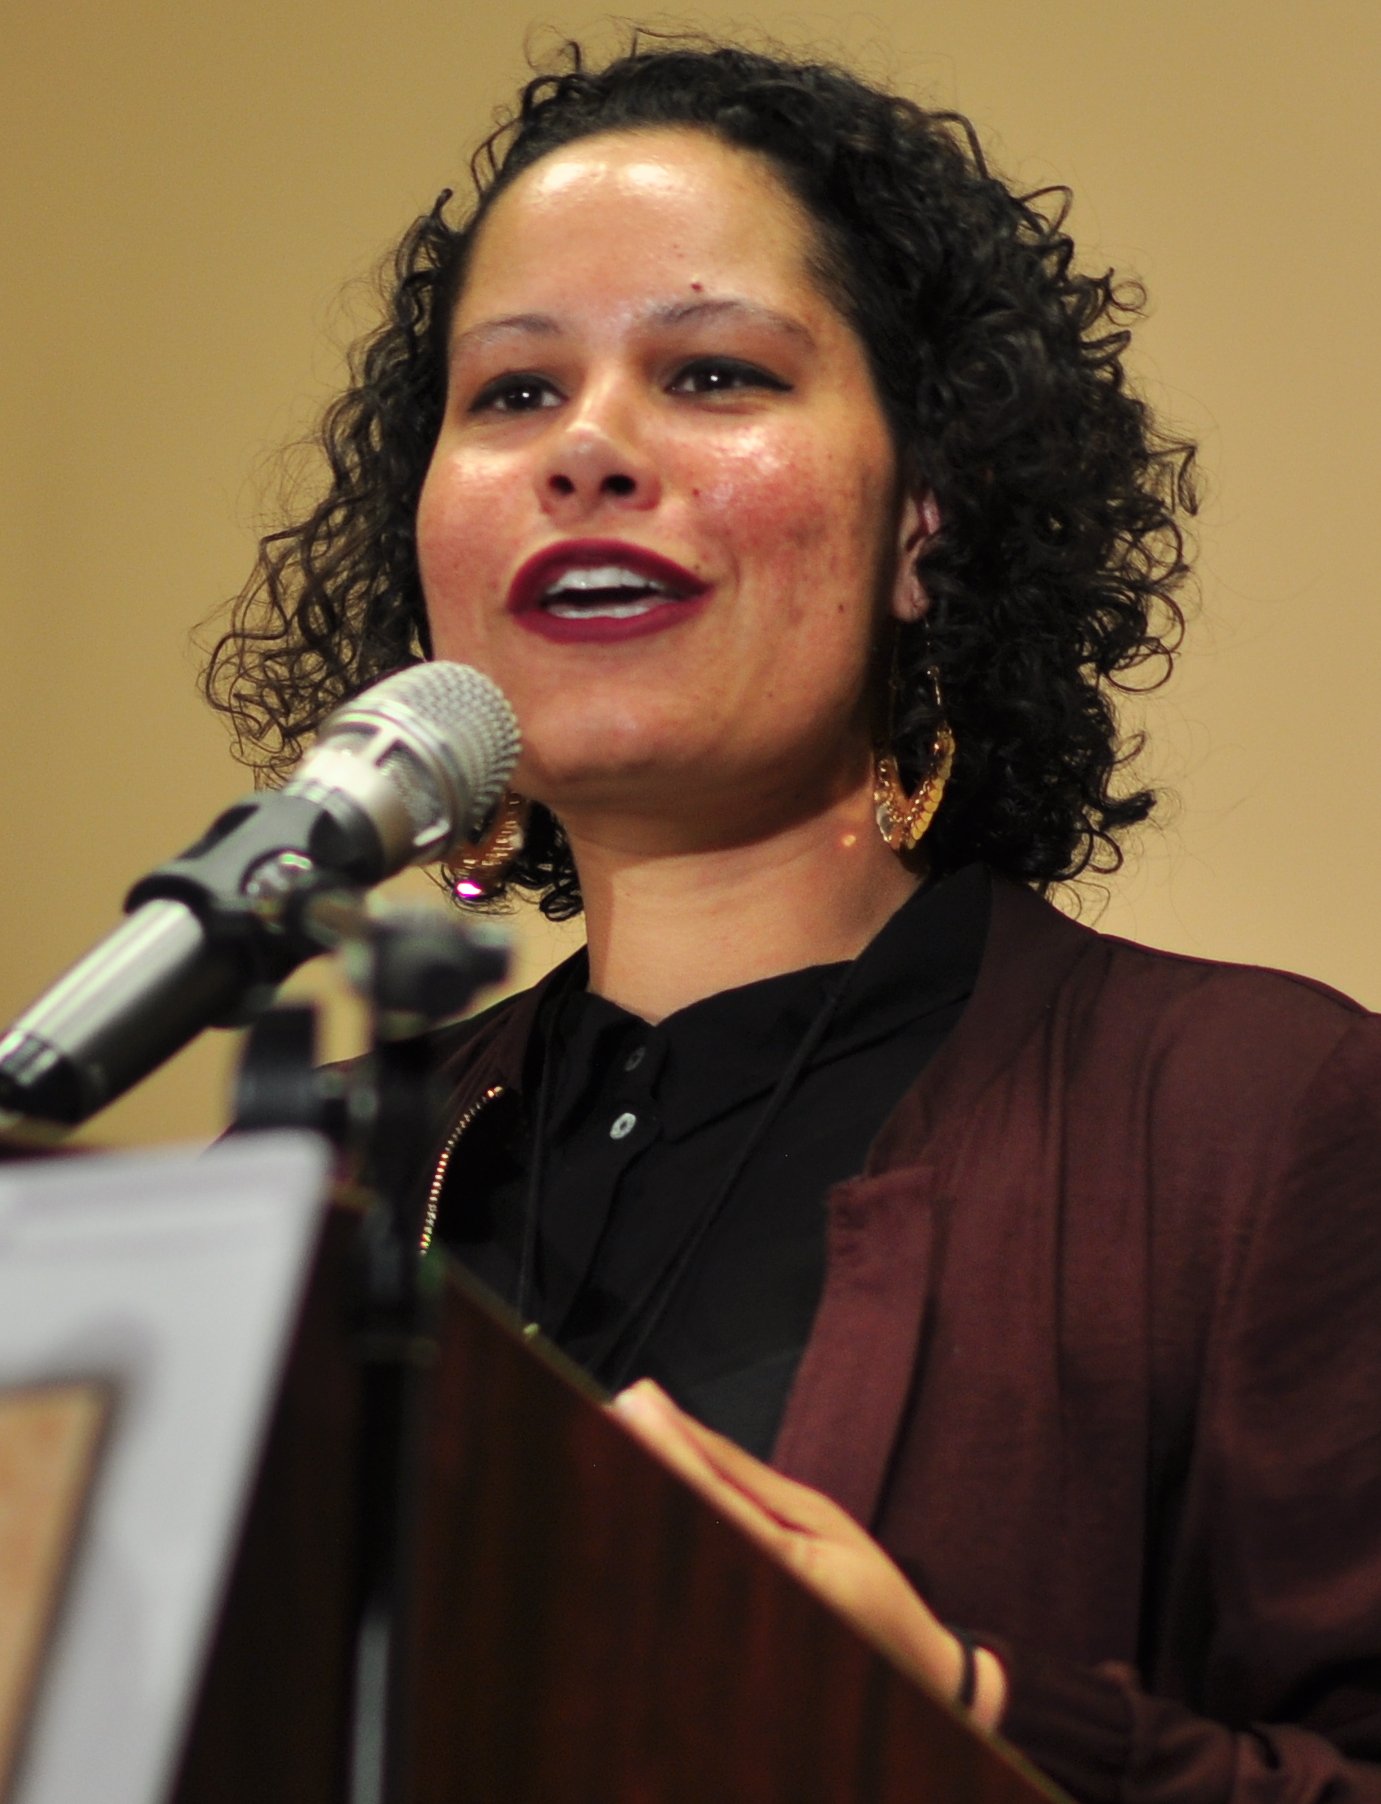 File:Nikkita Oliver 03 (cropped).jpg - Wikimedia Commons